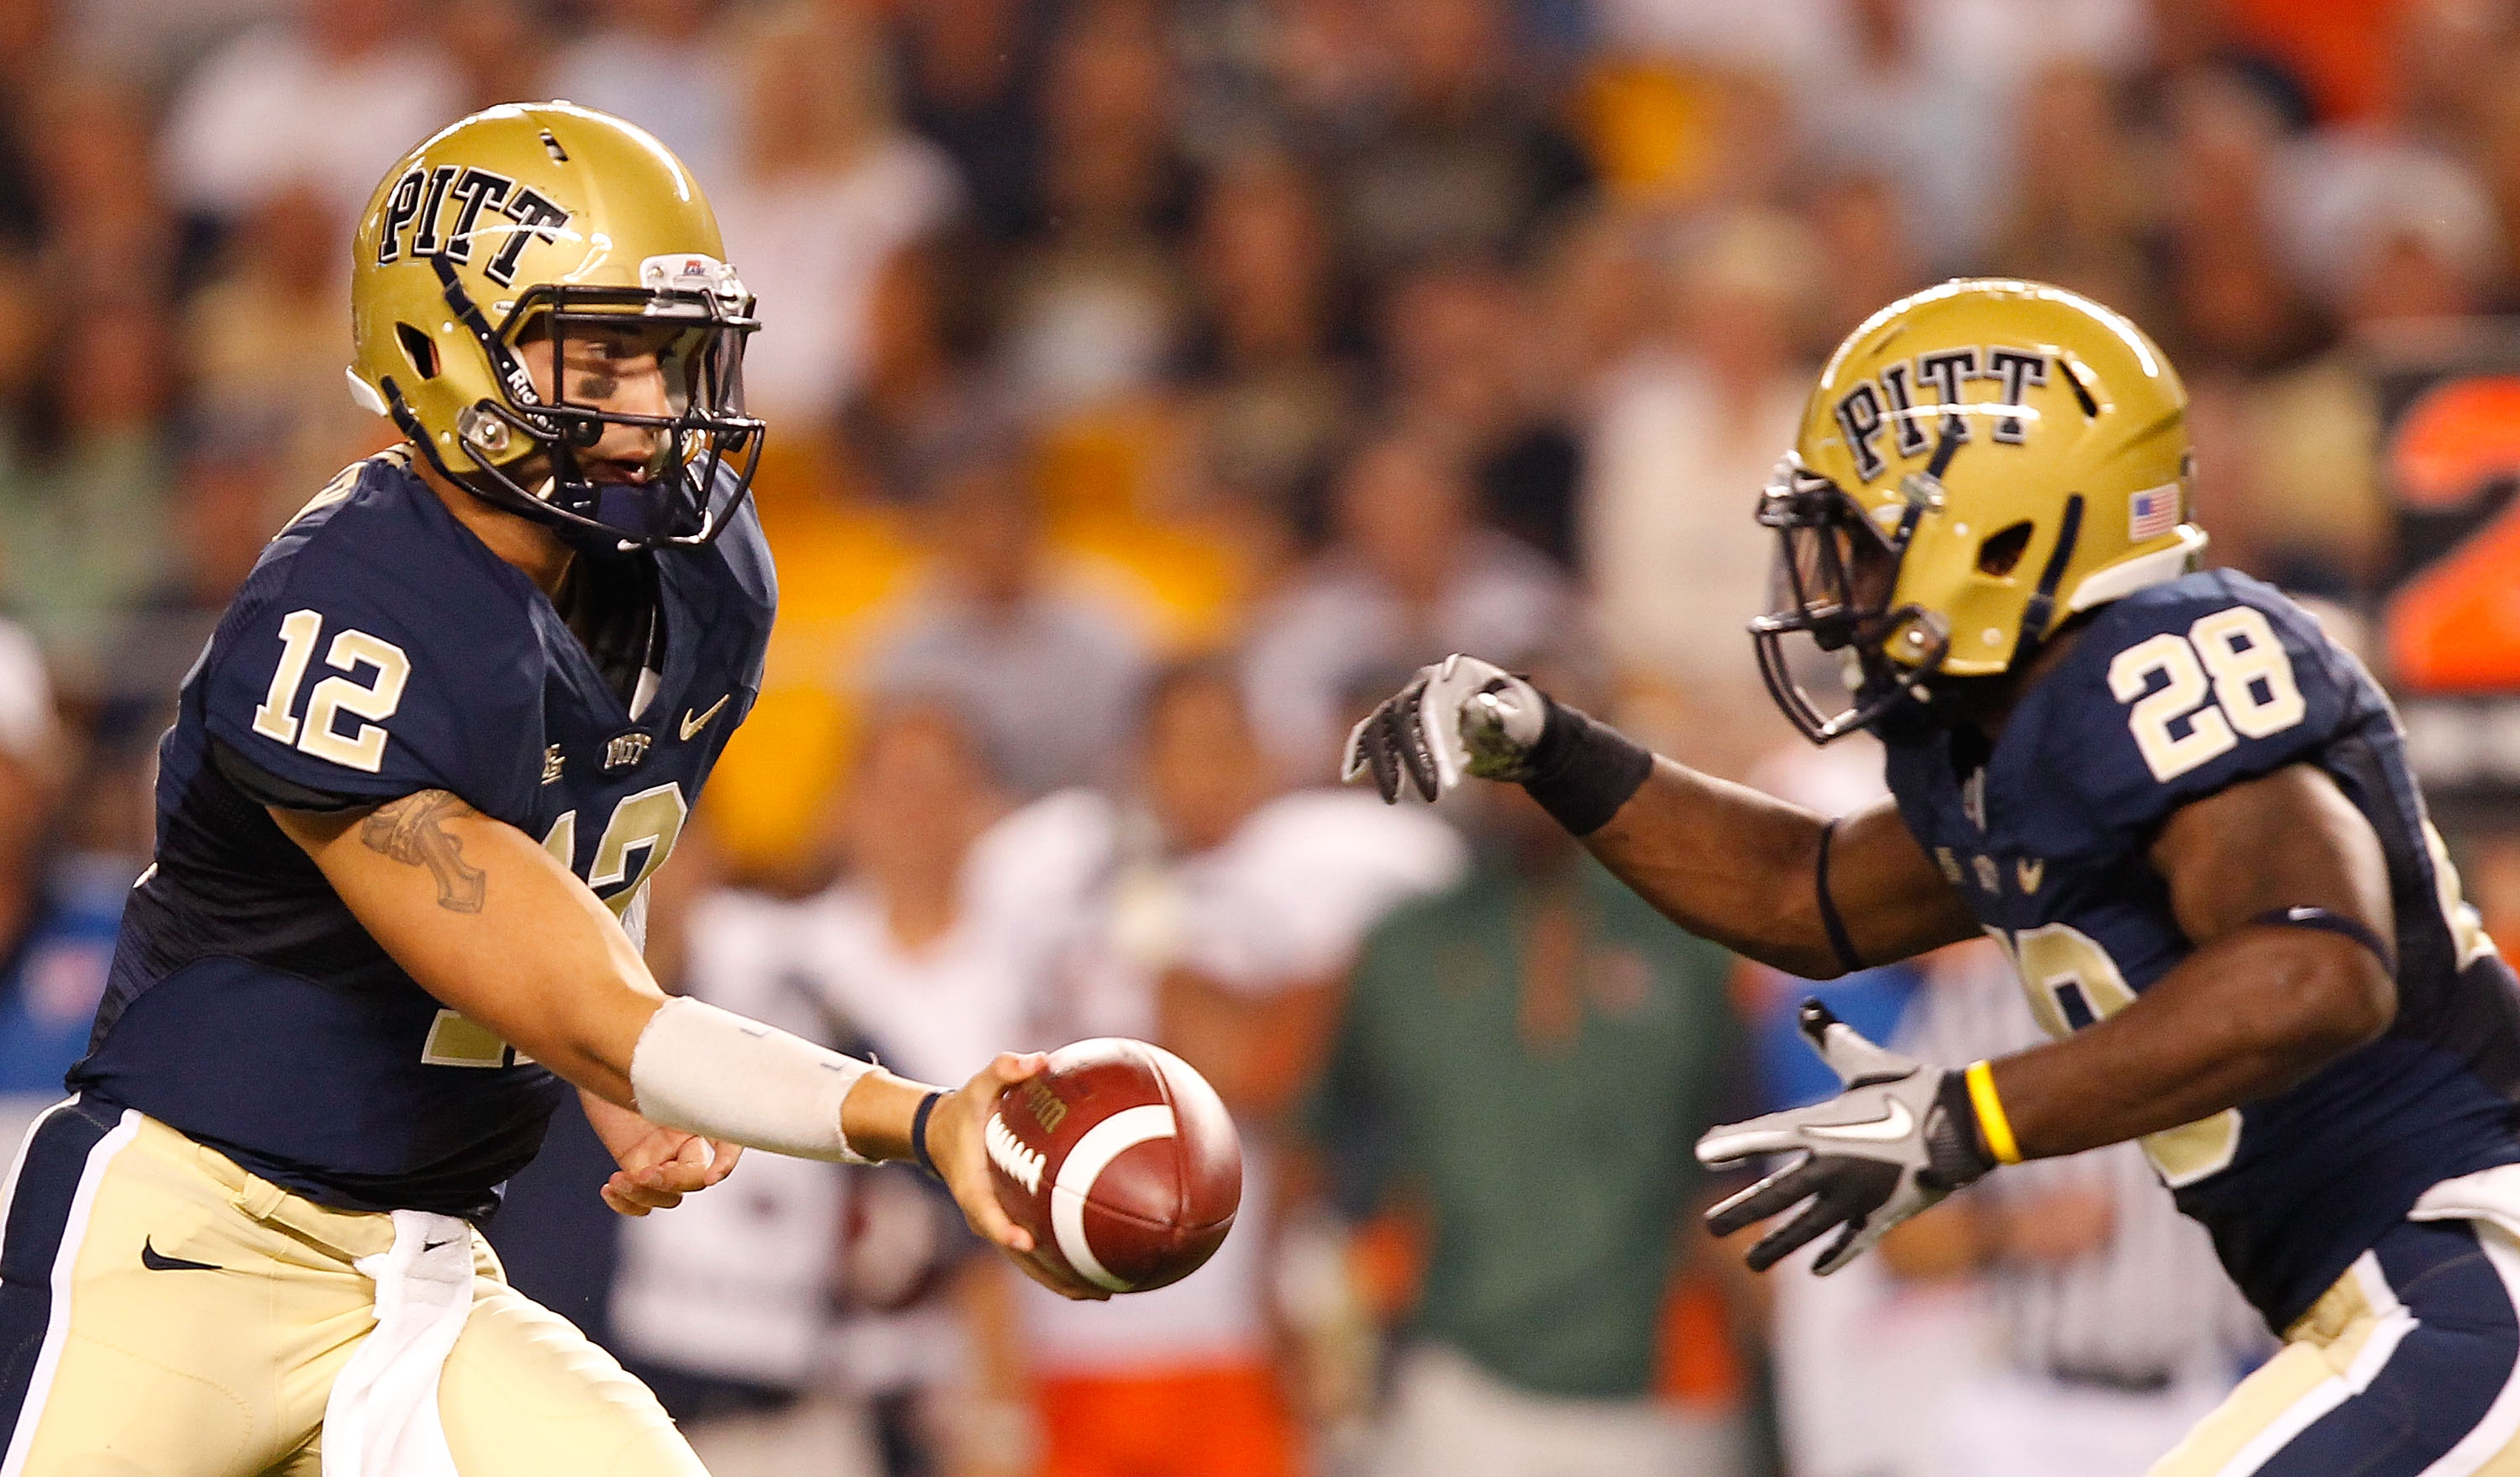 PITTSBURGH - SEPTEMBER 23:  Tino Sunseri #12 of the Pittsburgh Panthers hands the ball off to teammate Dion Lewis #28 during the game against the Miami Hurricanes on September 23, 2010 at Heinz Field in Pittsburgh, Pennsylvania.  (Photo by Jared Wickerham